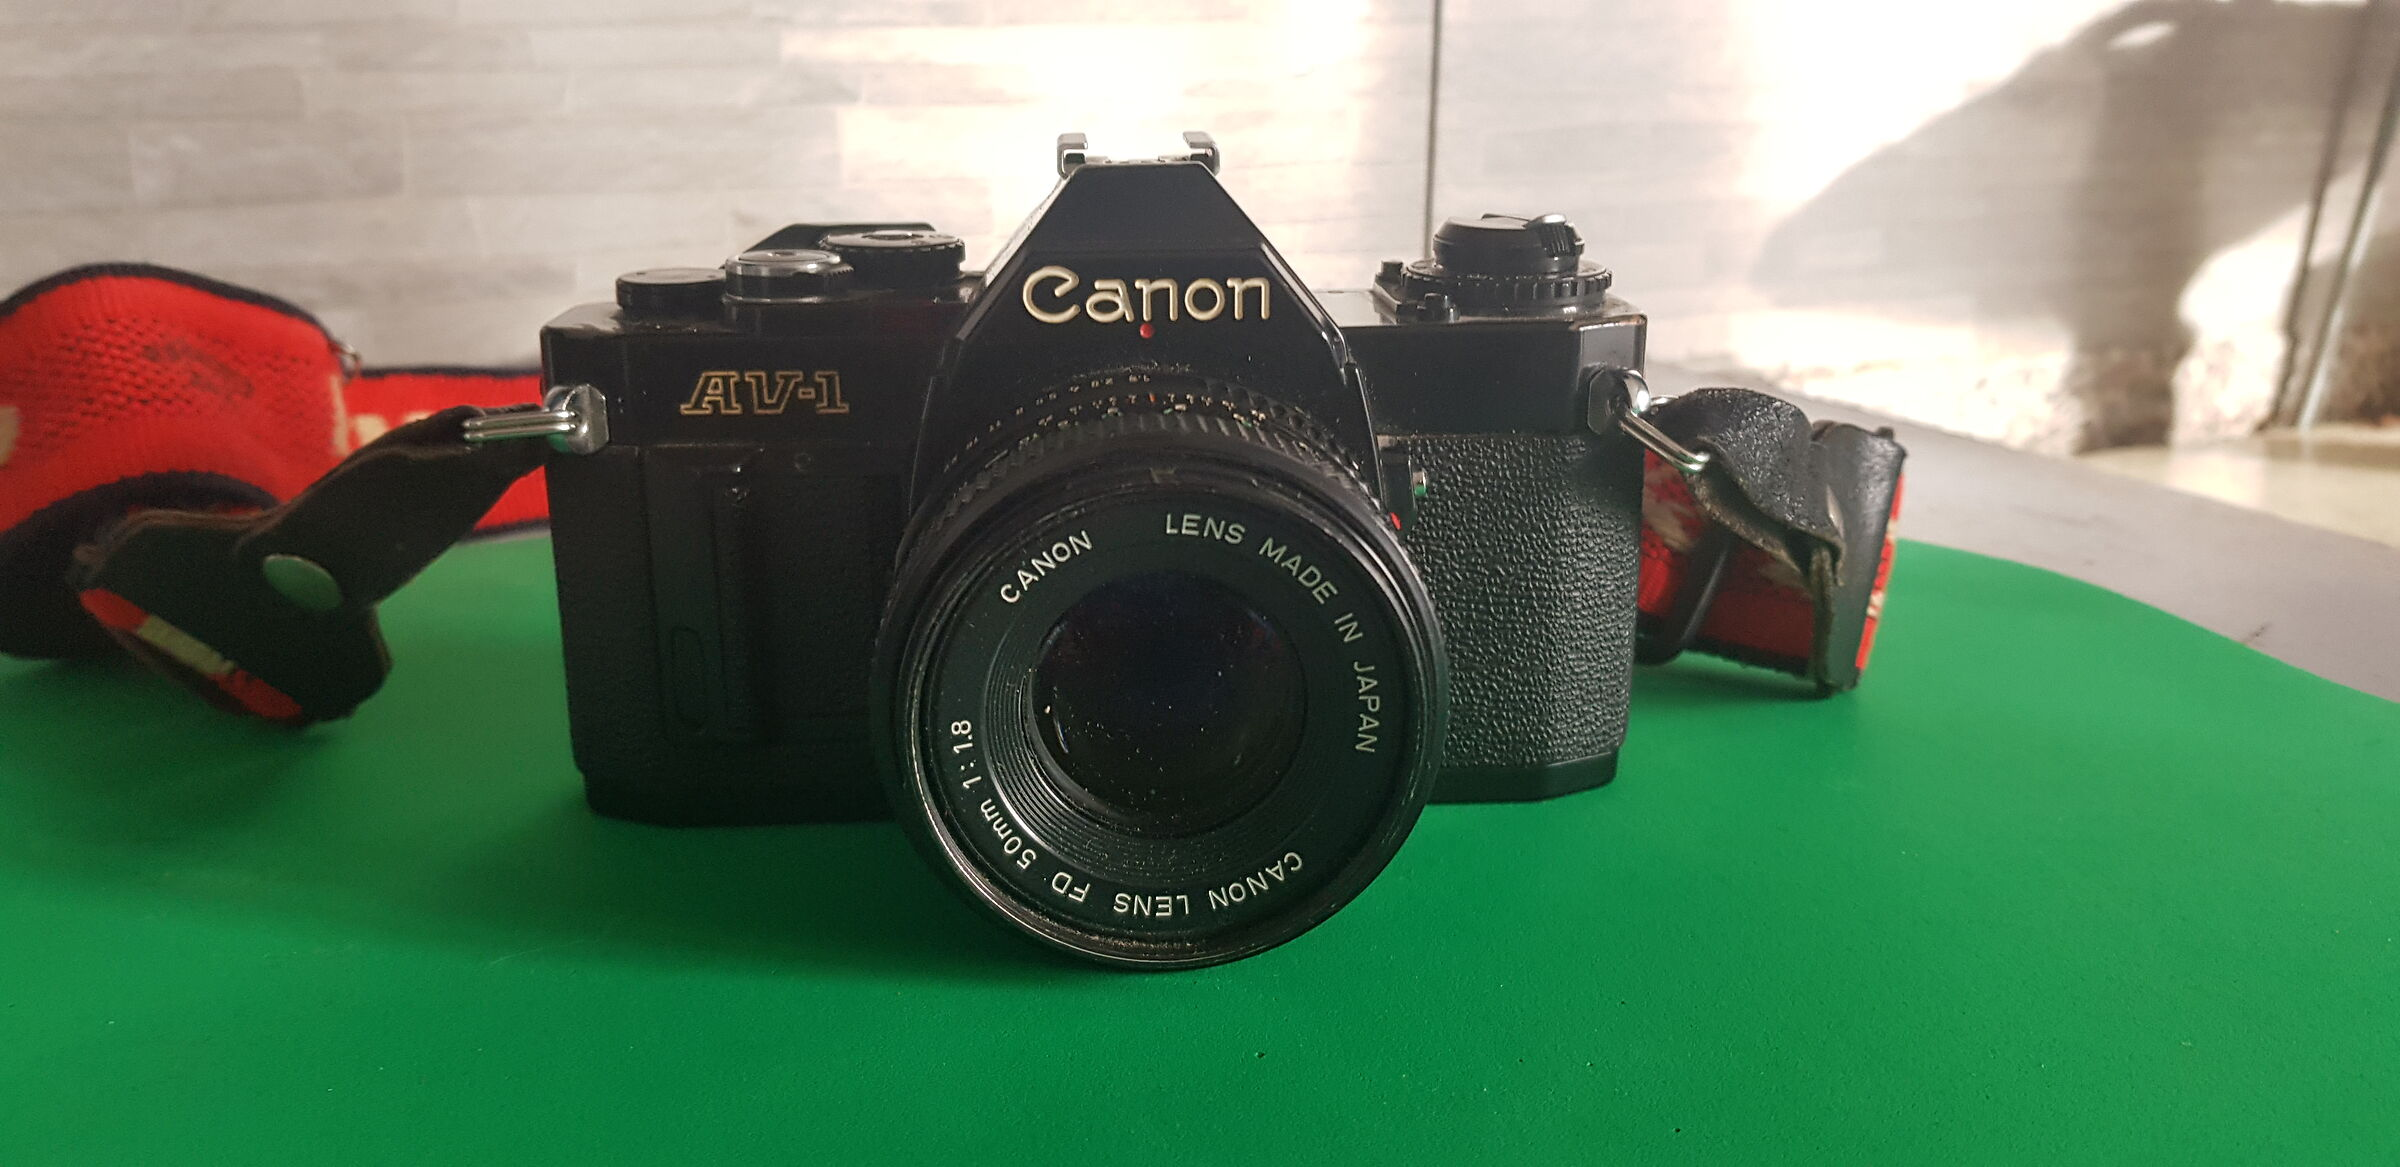 My first Canon ...